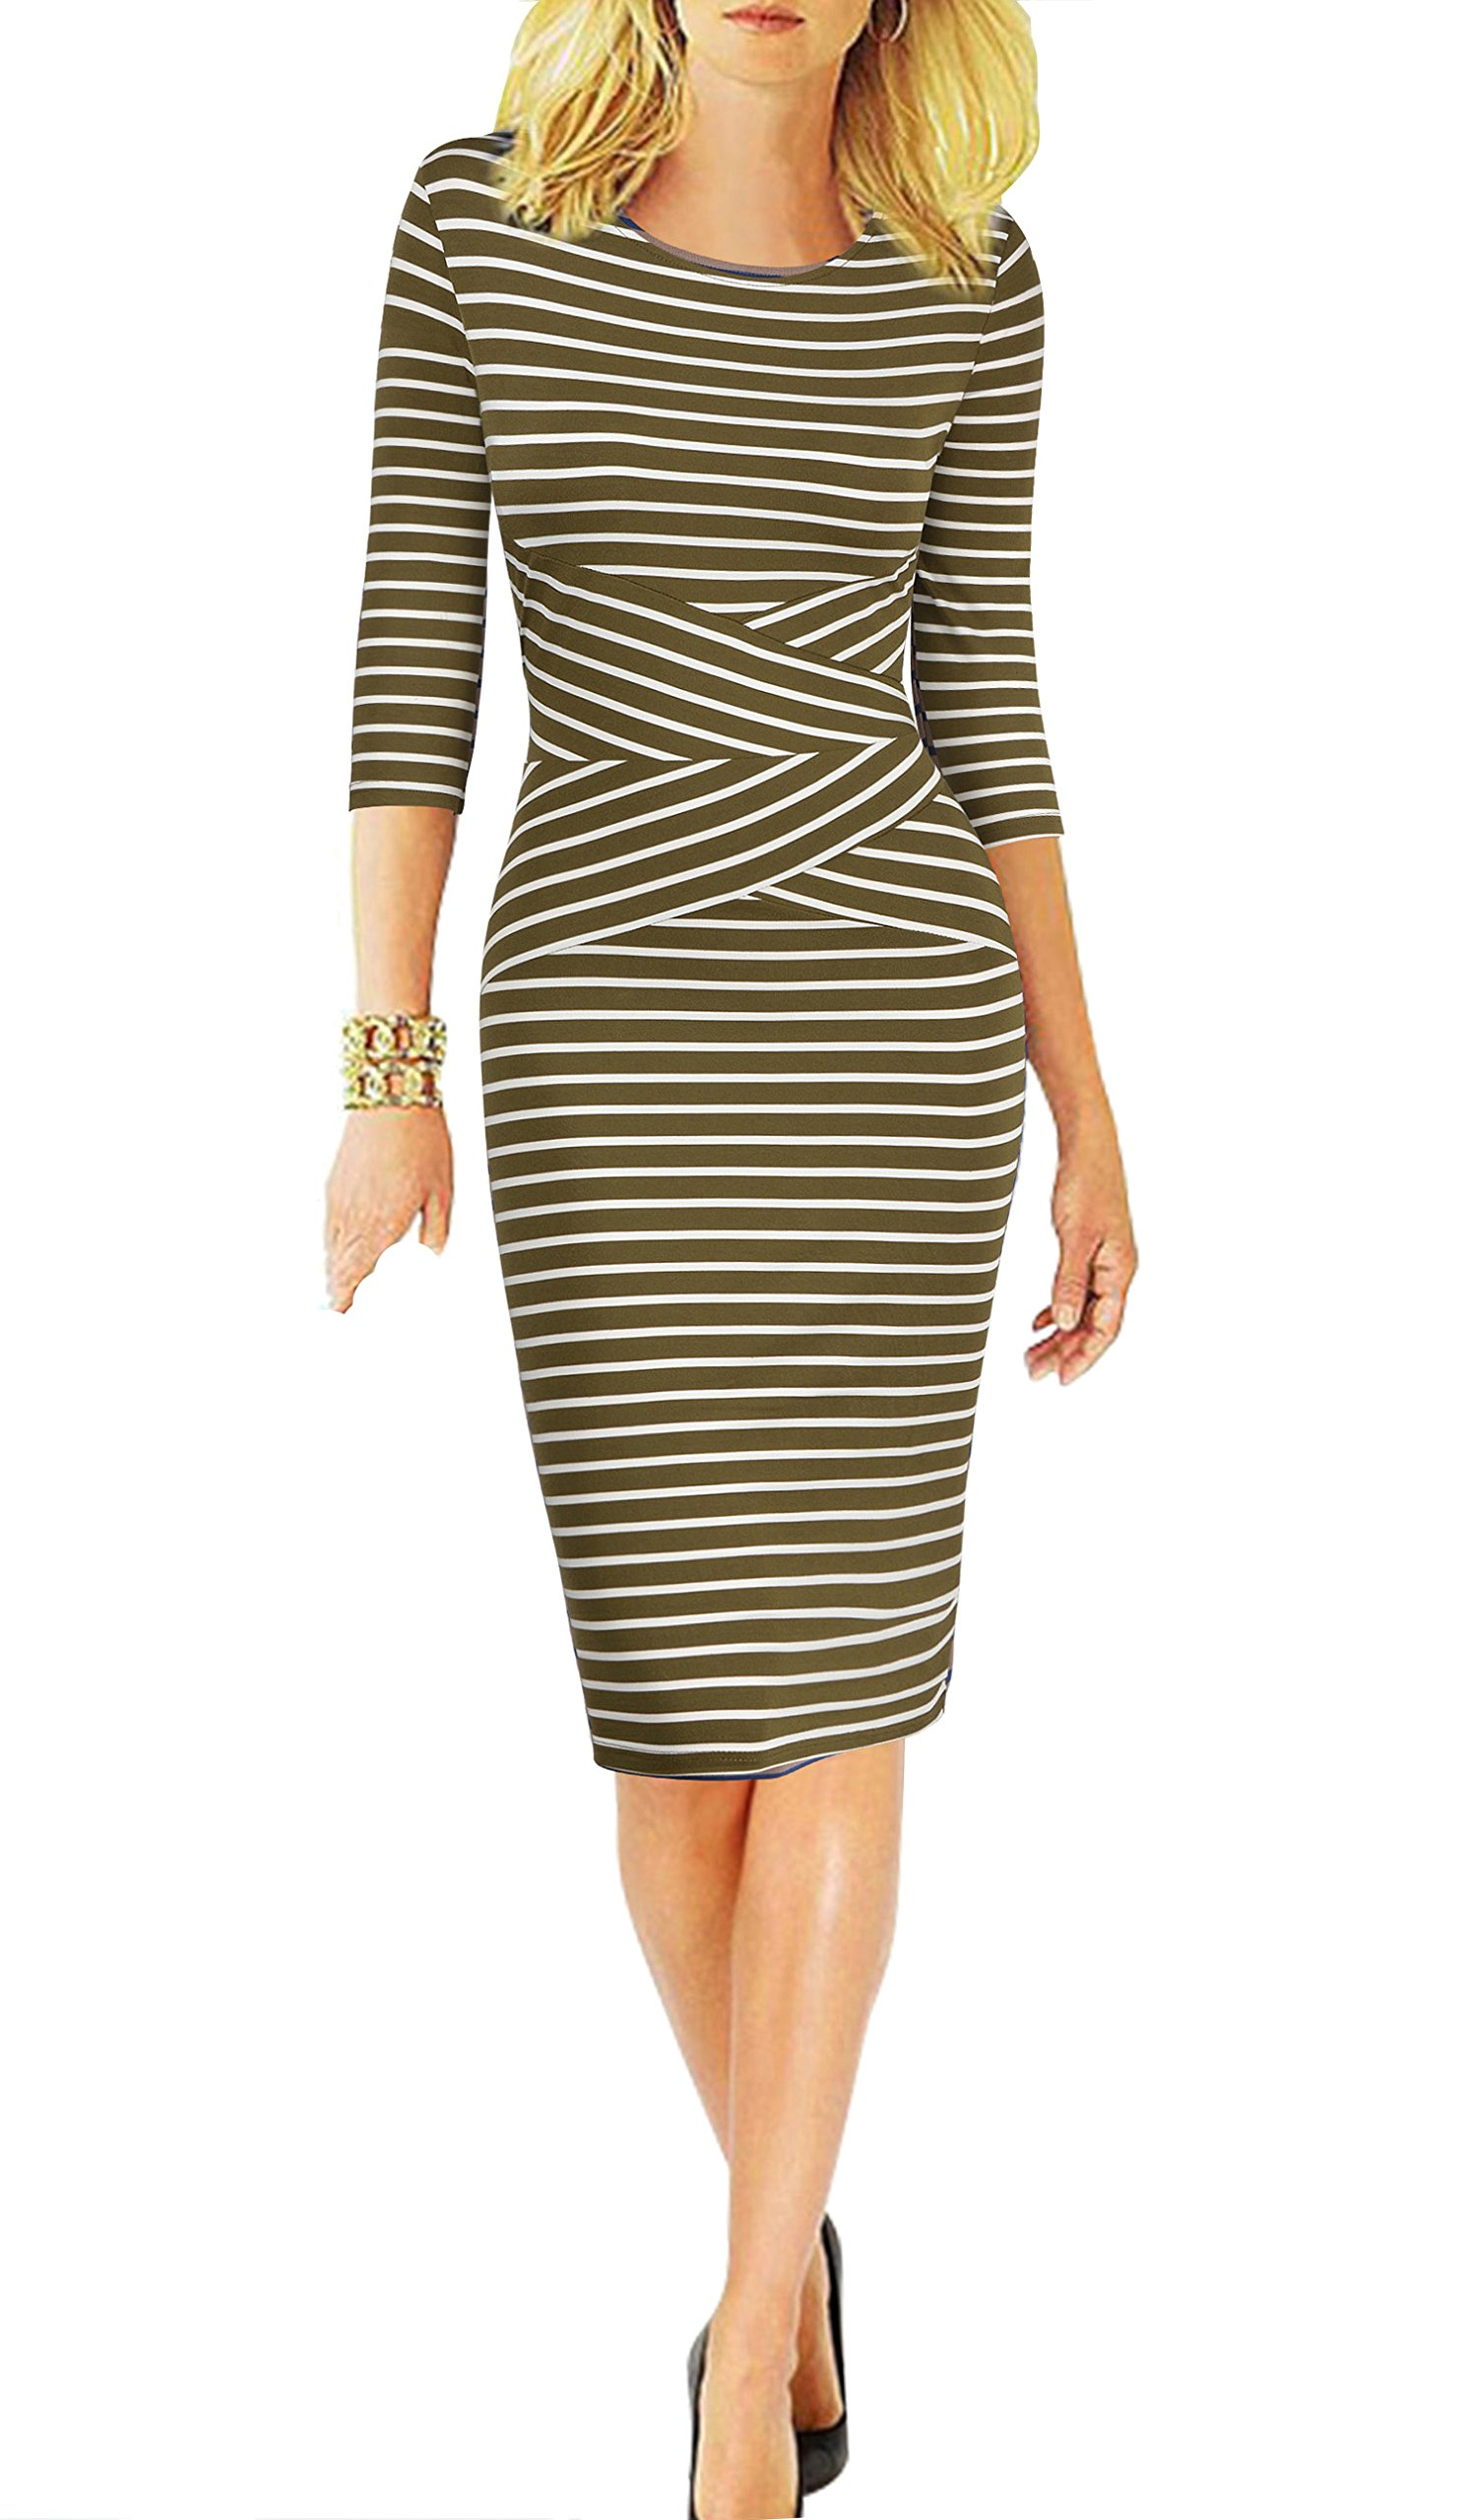 REPHYLLIS Women 3/4 Sleeve Striped Wear to Work Business Cocktail Pencil Dress (Small, Armygreen)